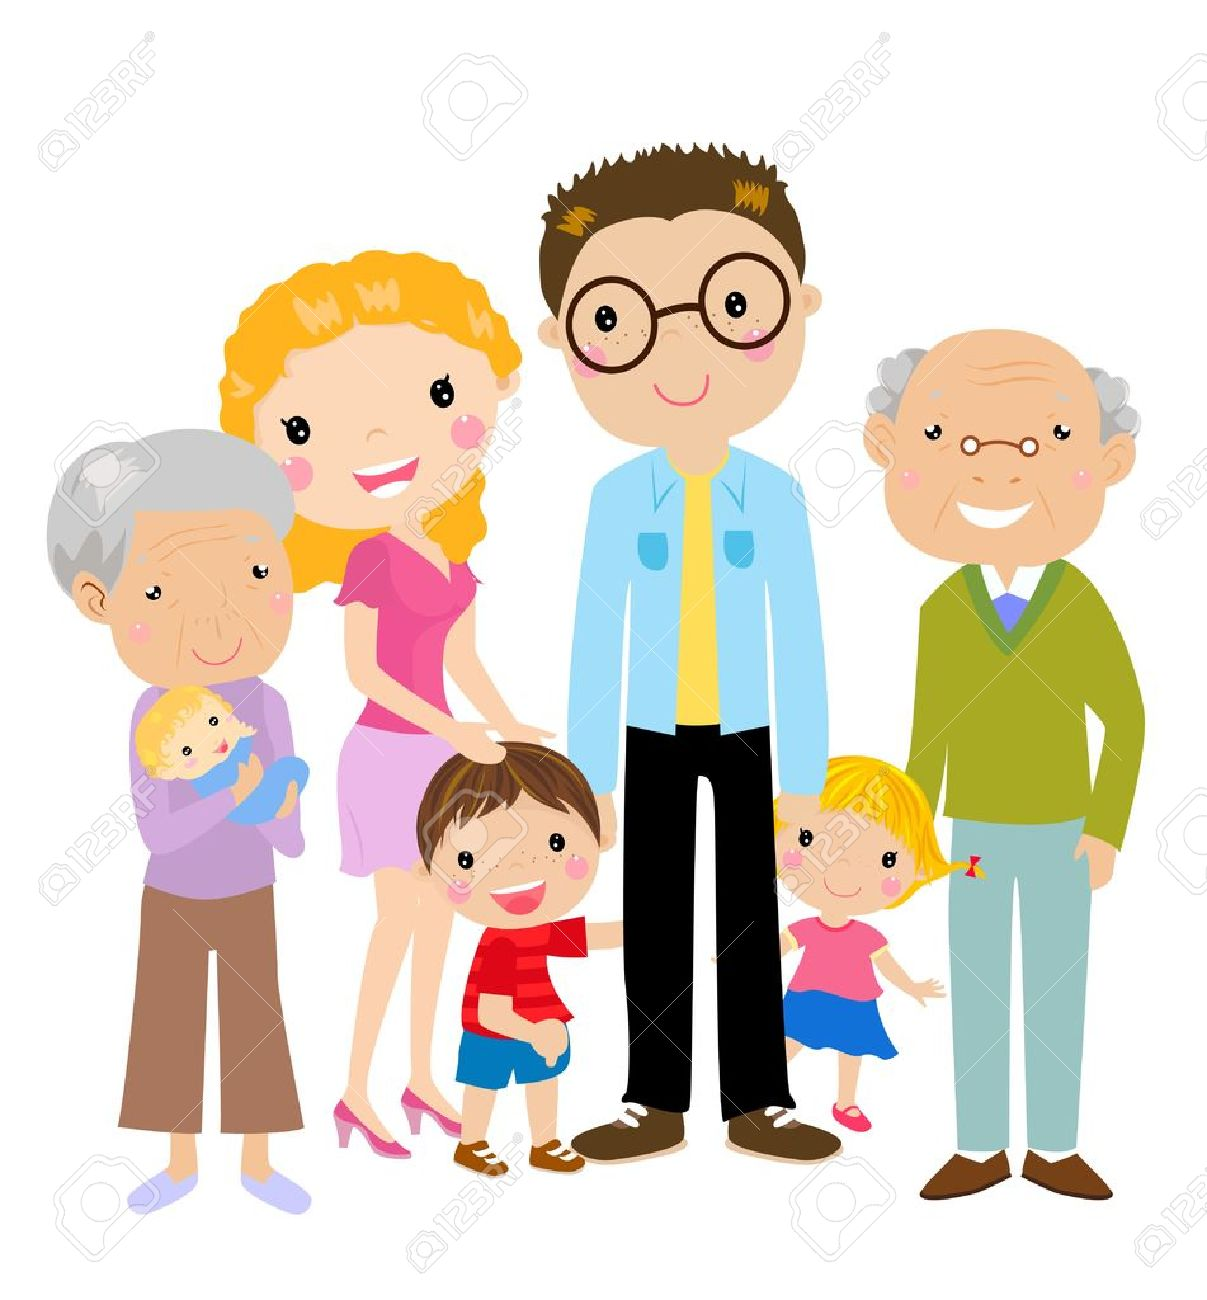 Big cartoon family with parents, children and grandparents, vector illustration Stock Vector - 15452367